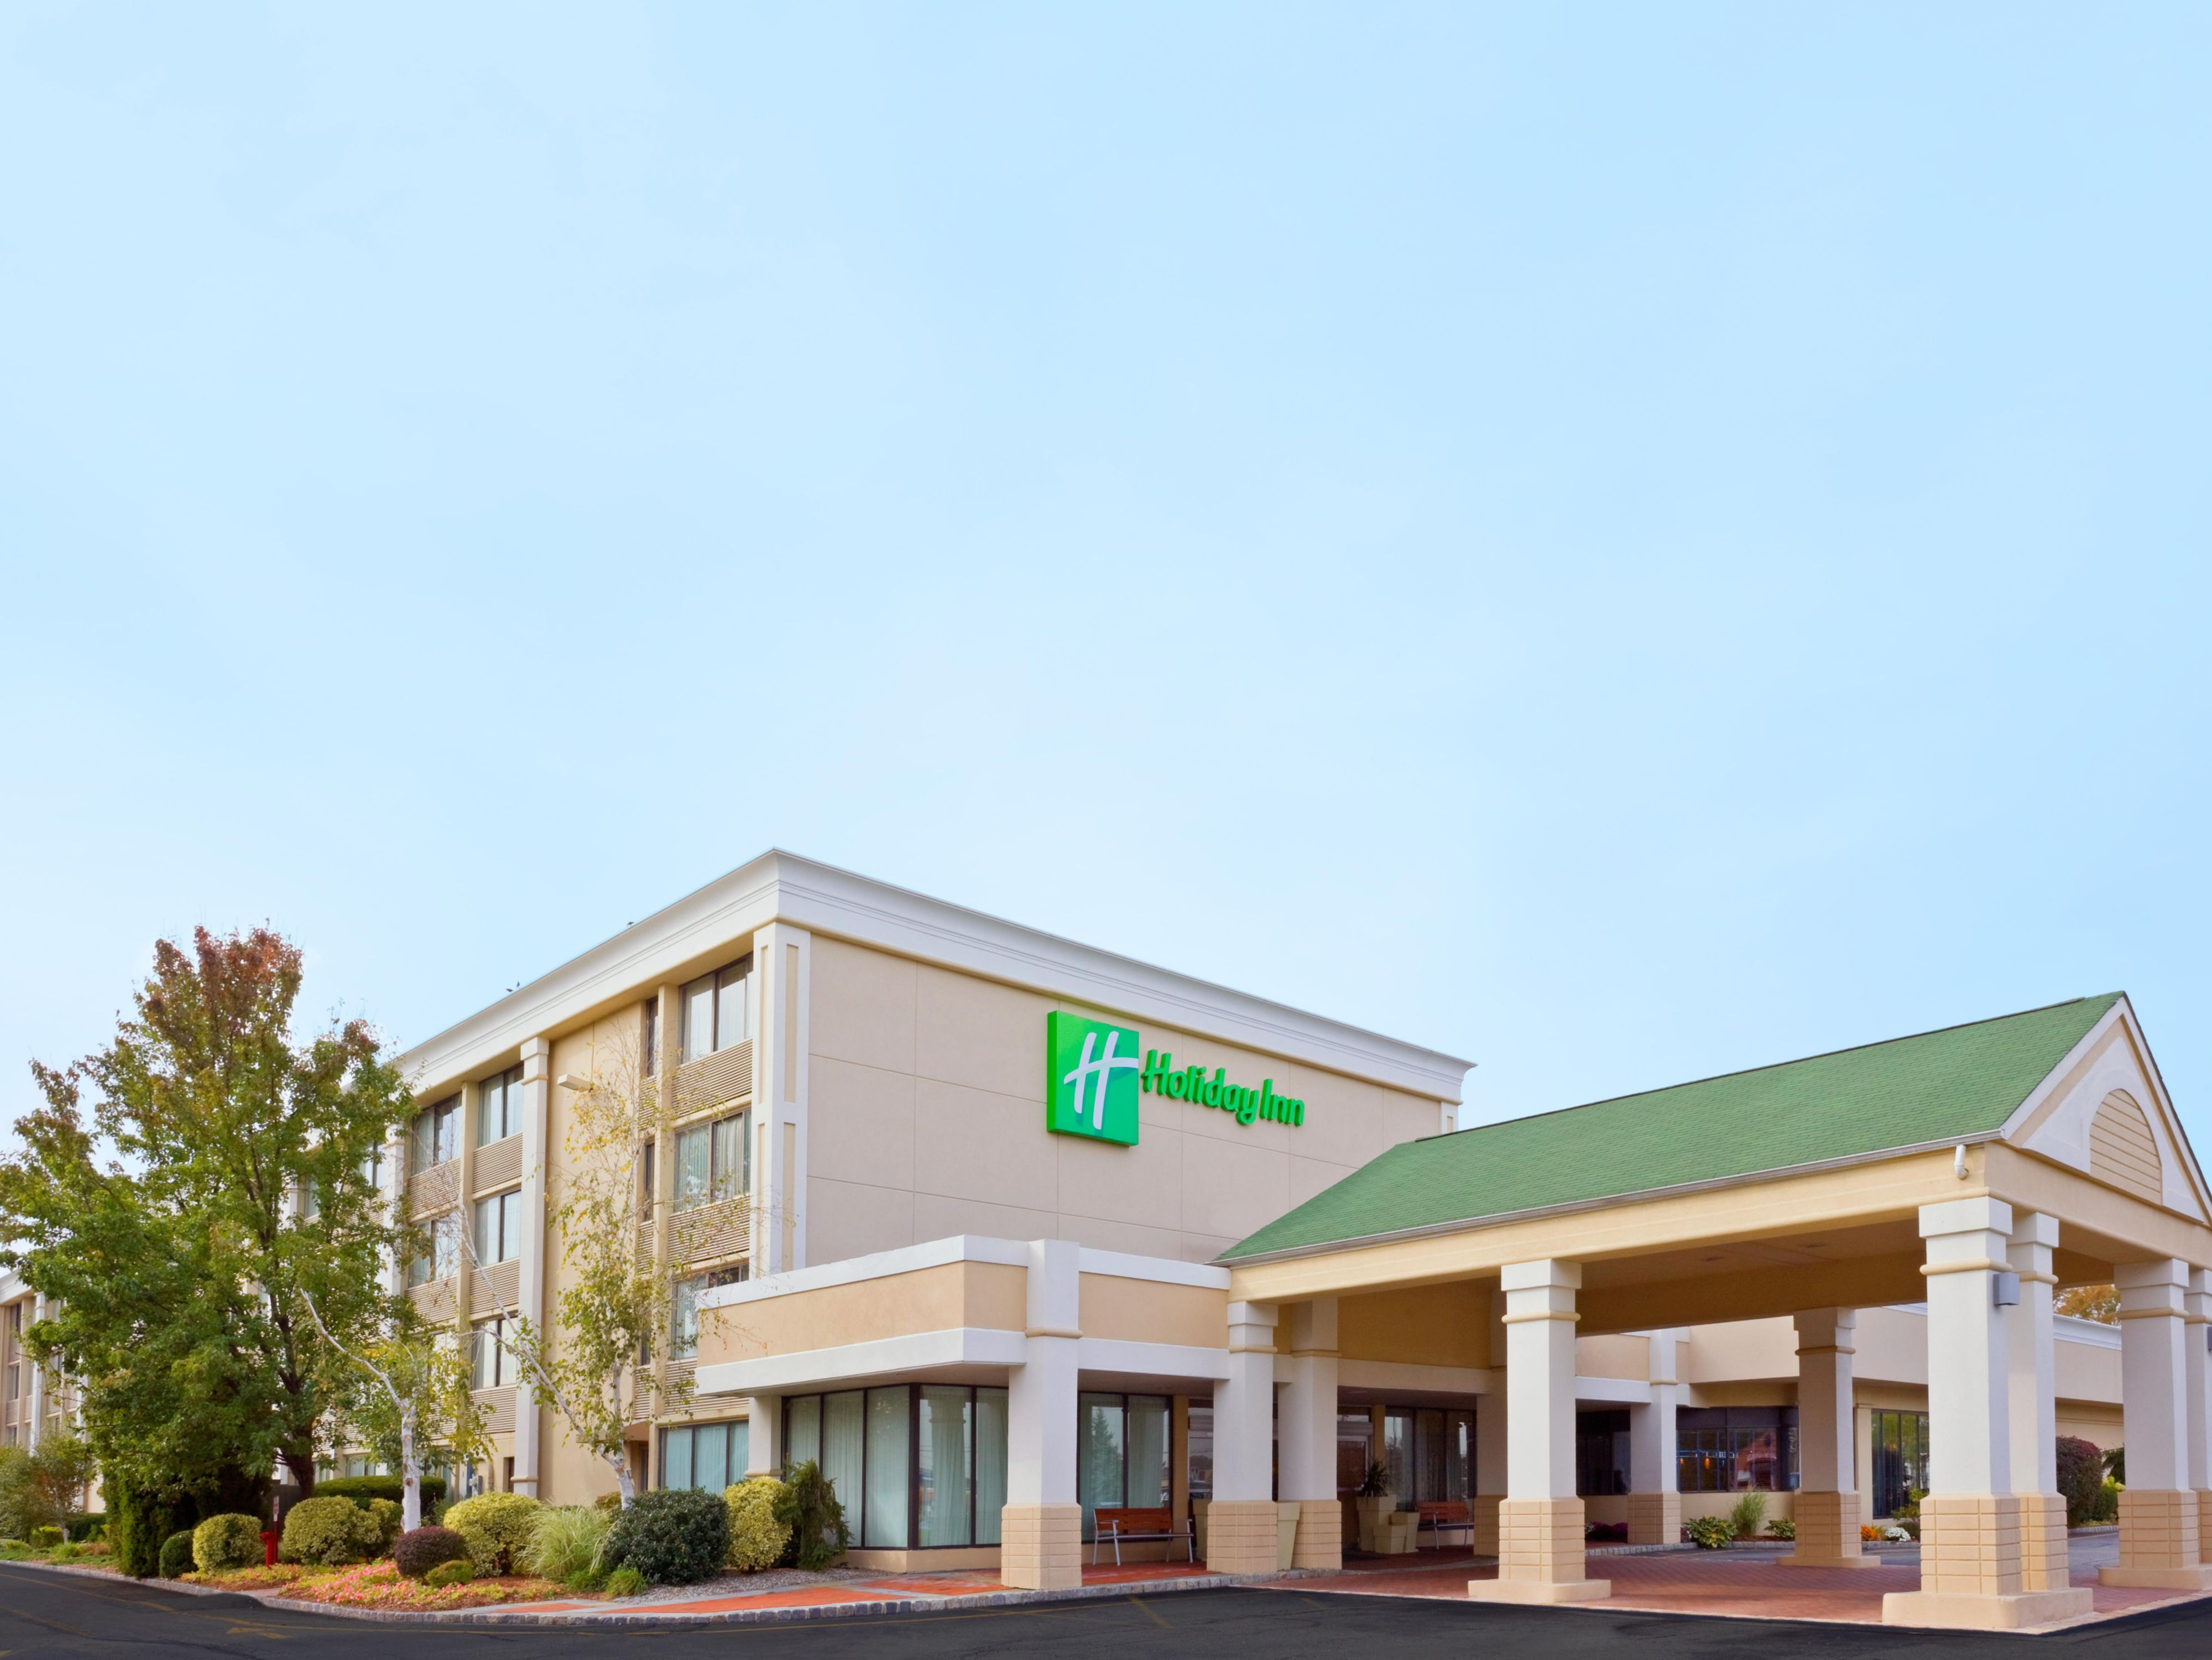 Welcome to our Holiday Inn & Suites - Parsippany